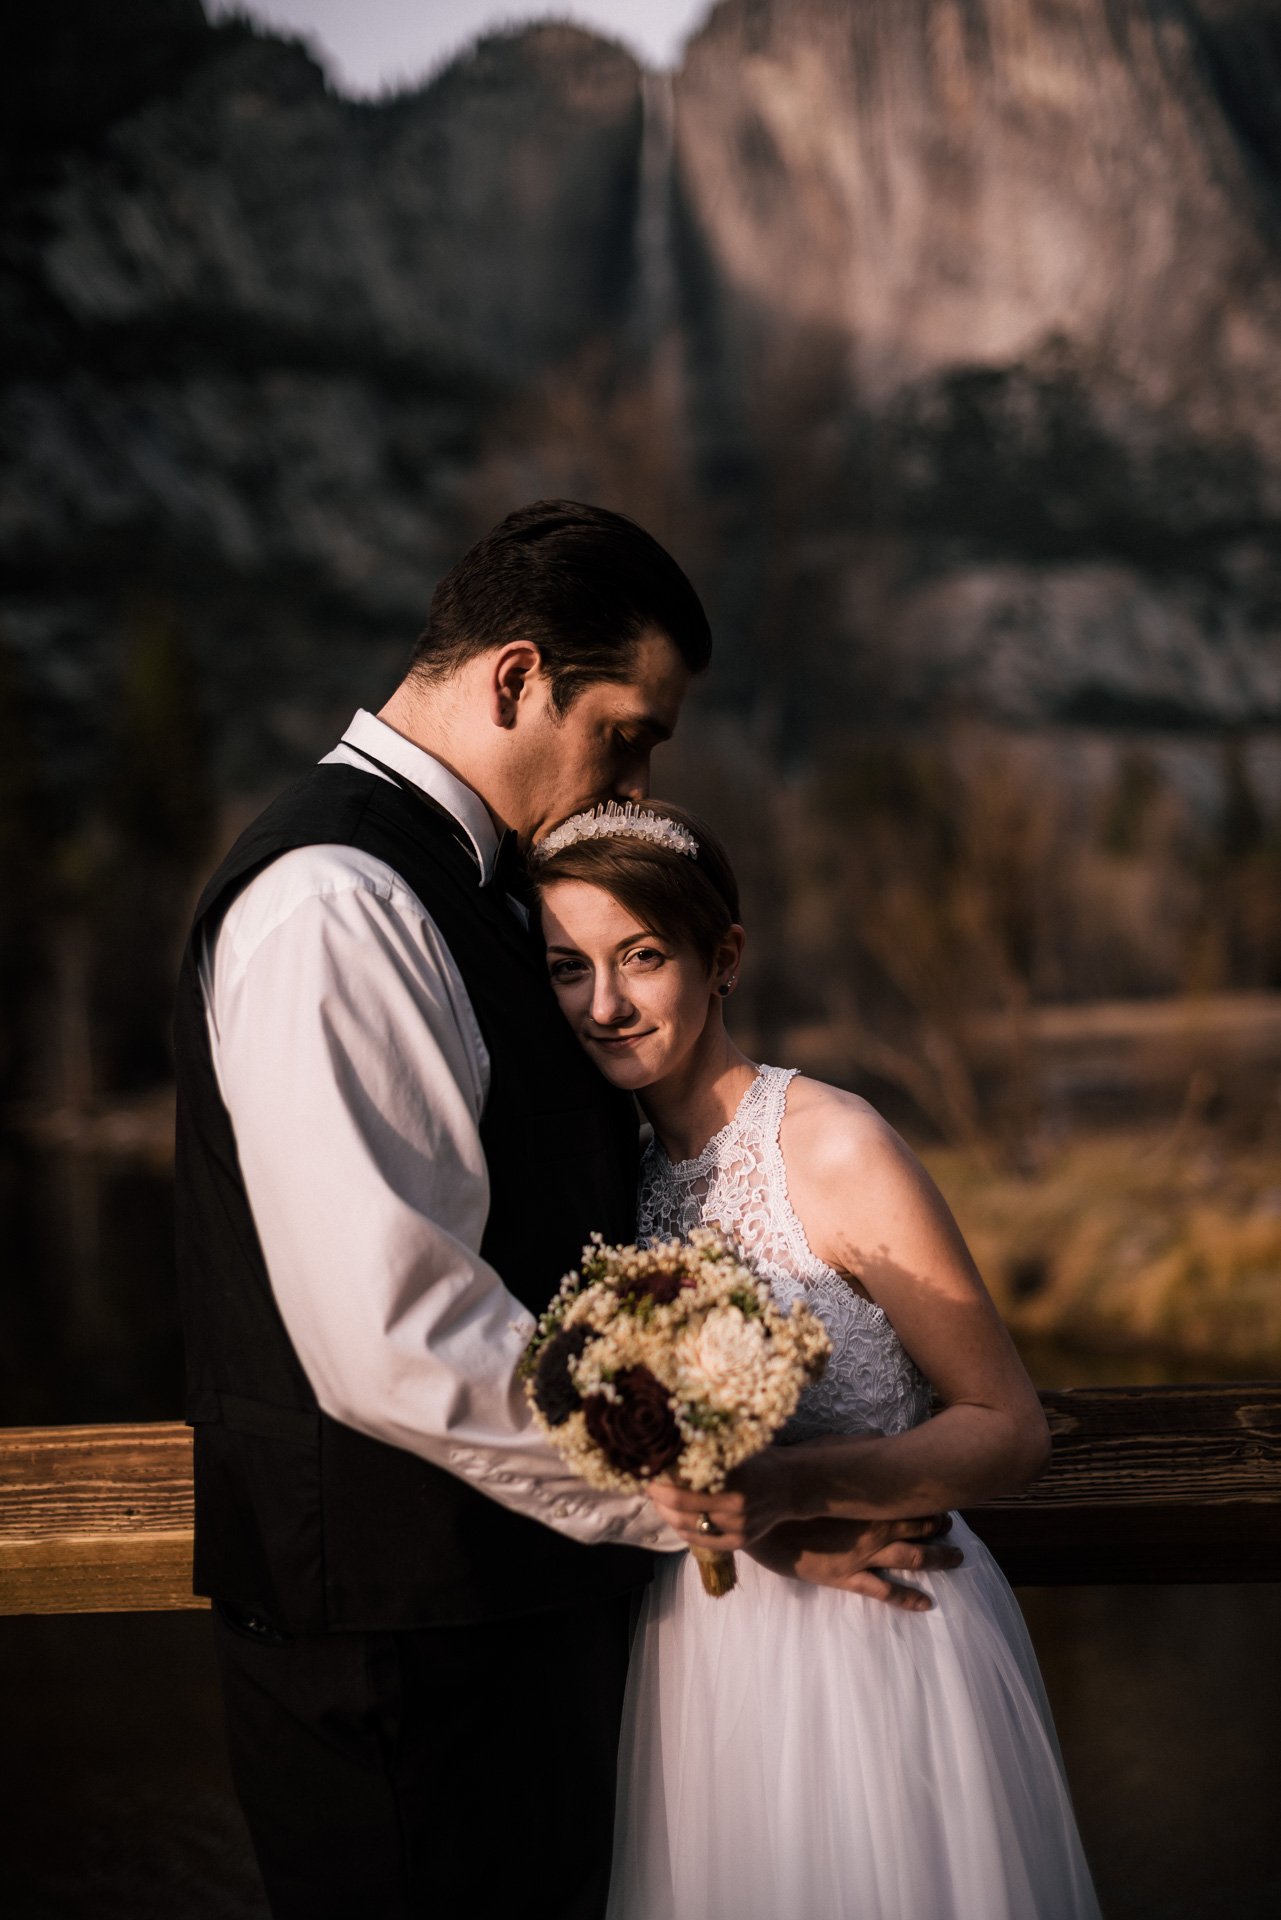 Bride and groom get lost in each others arms after their yosemite elopement at swinging bridge